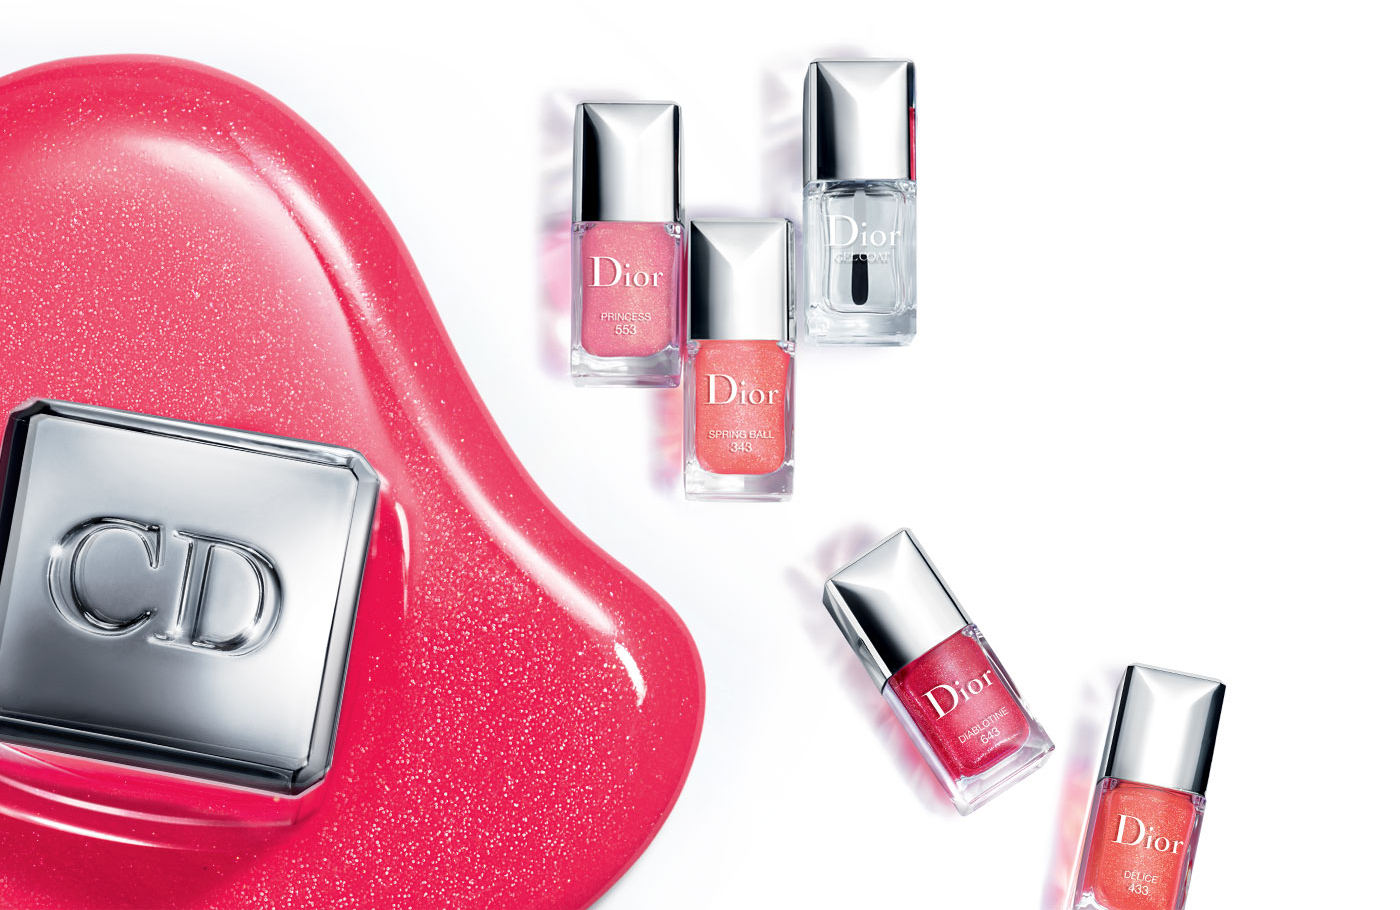 Un mini vernis Dior offert !